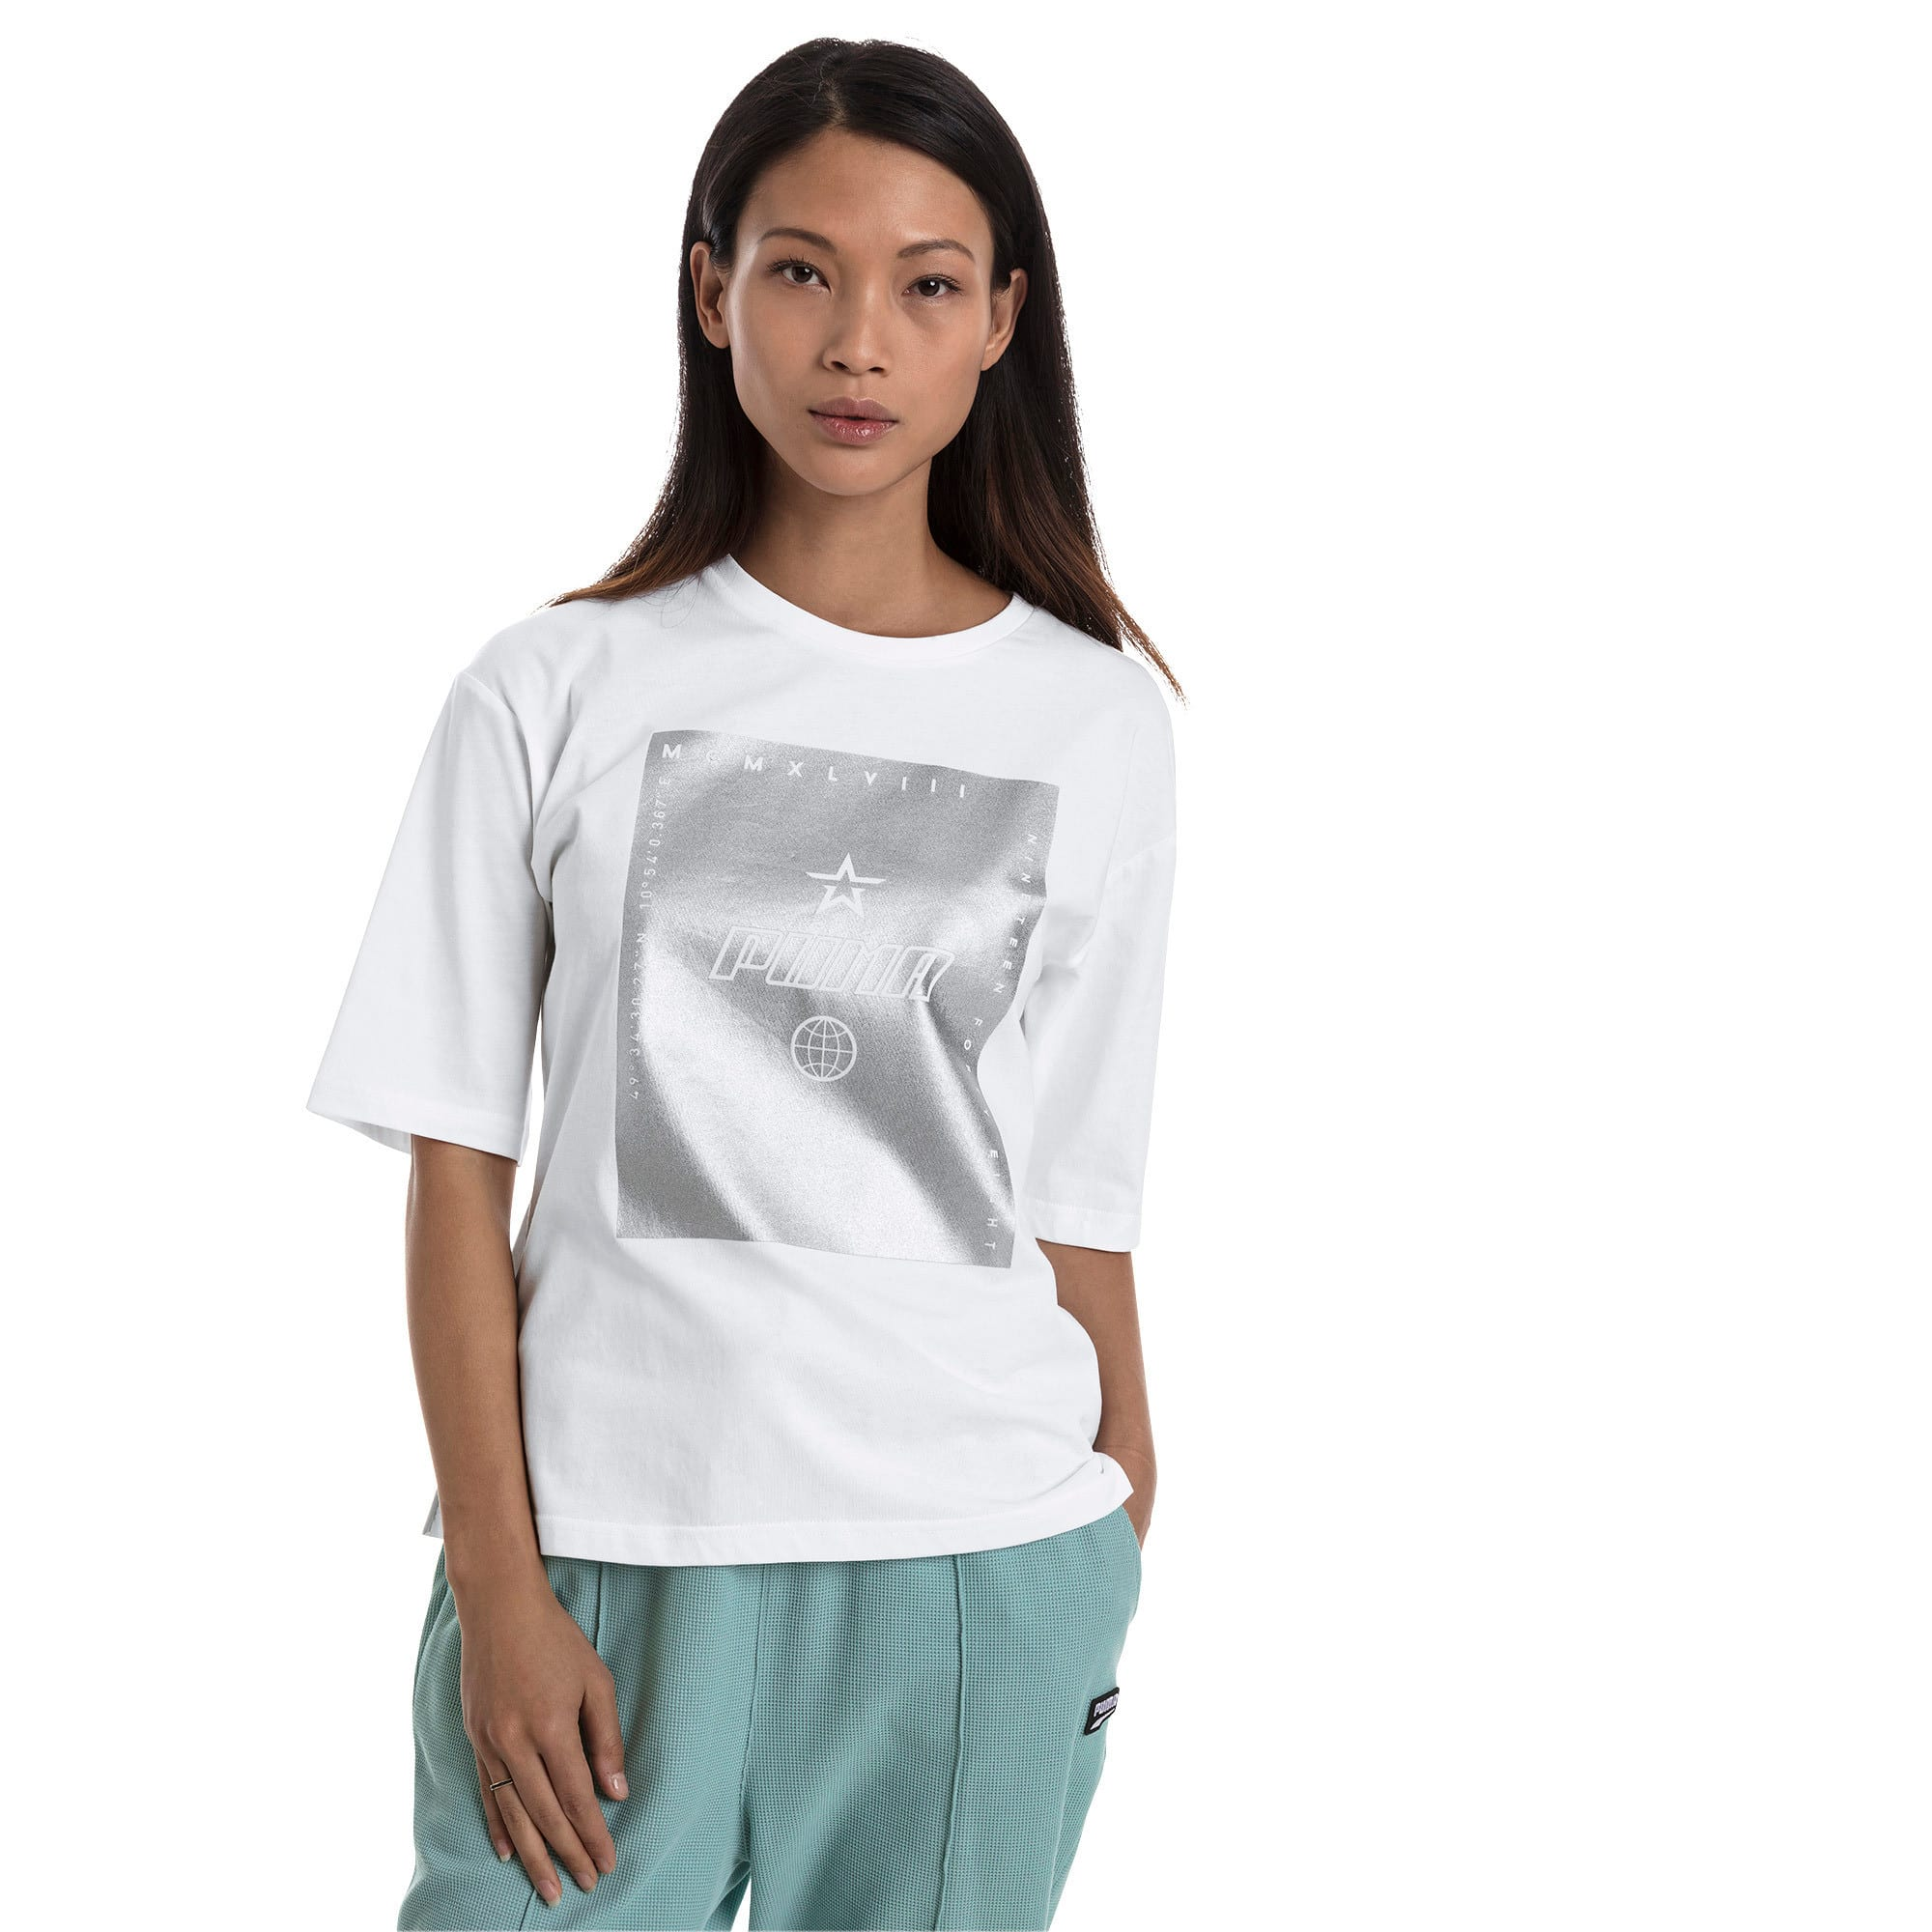 Thumbnail 2 of Trailblazer Women's Tee, Puma White, medium